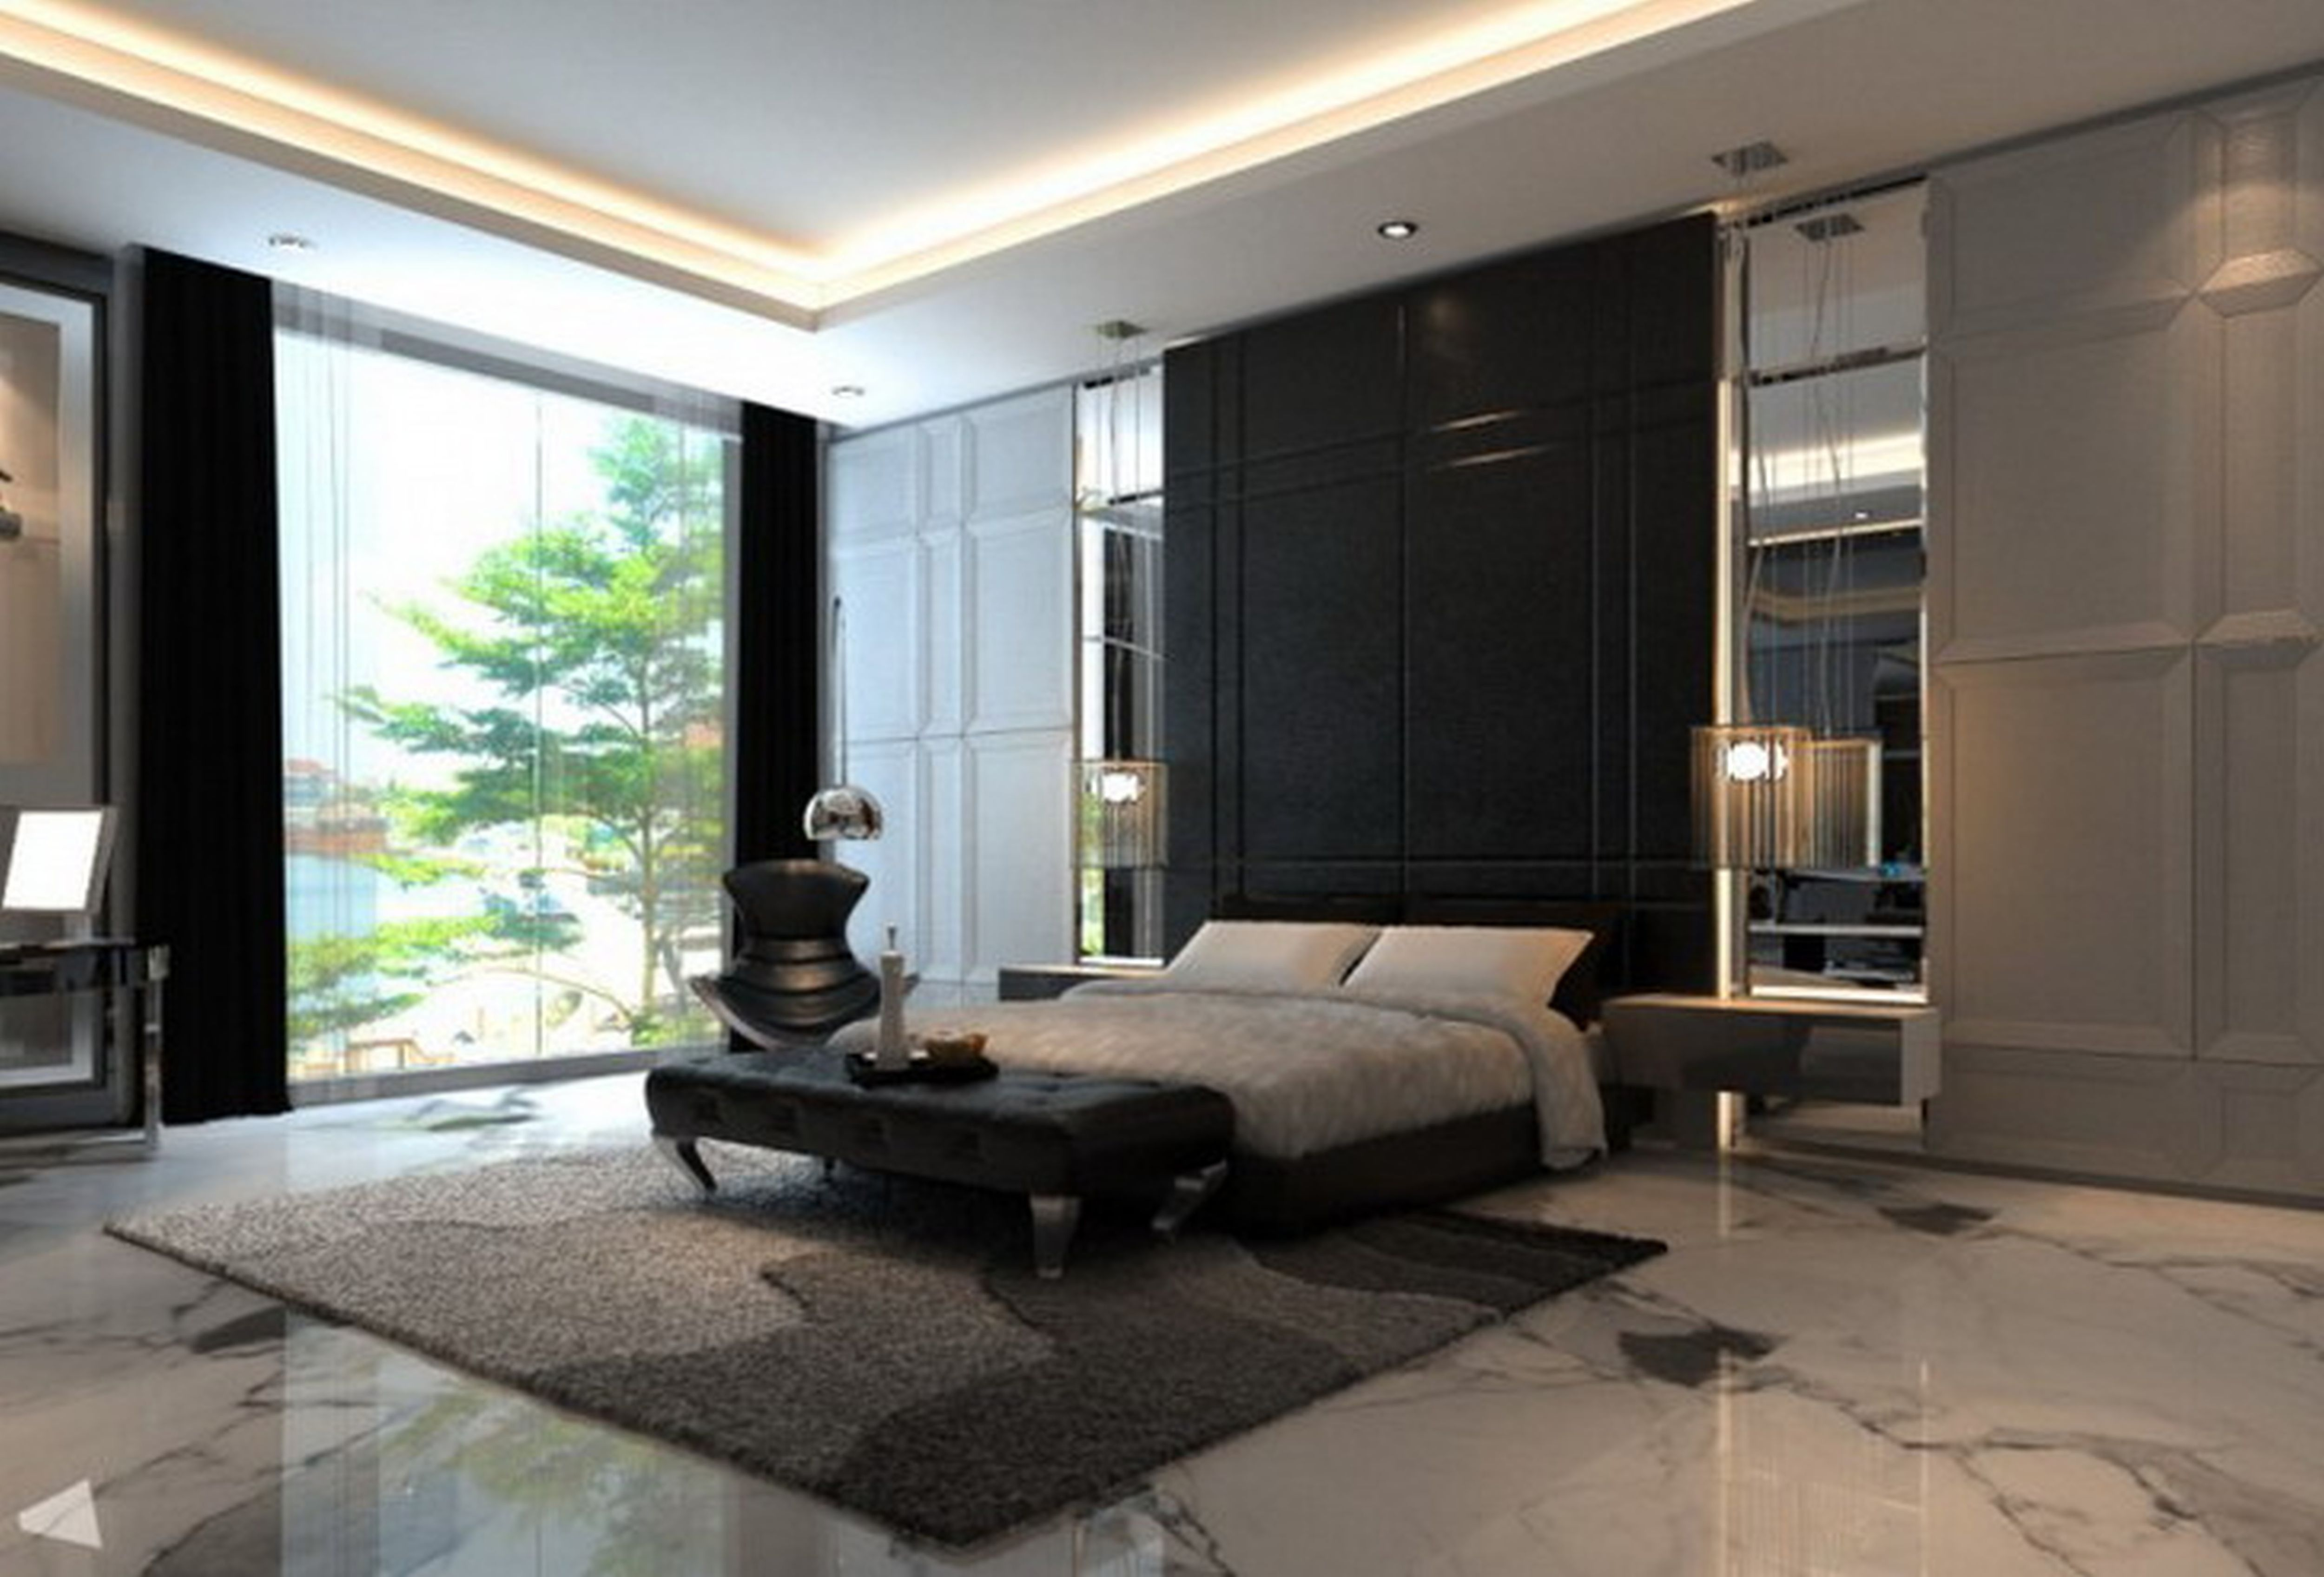 Pin by MWM Studio on Concepts - Bedrooms and suites | Master ...